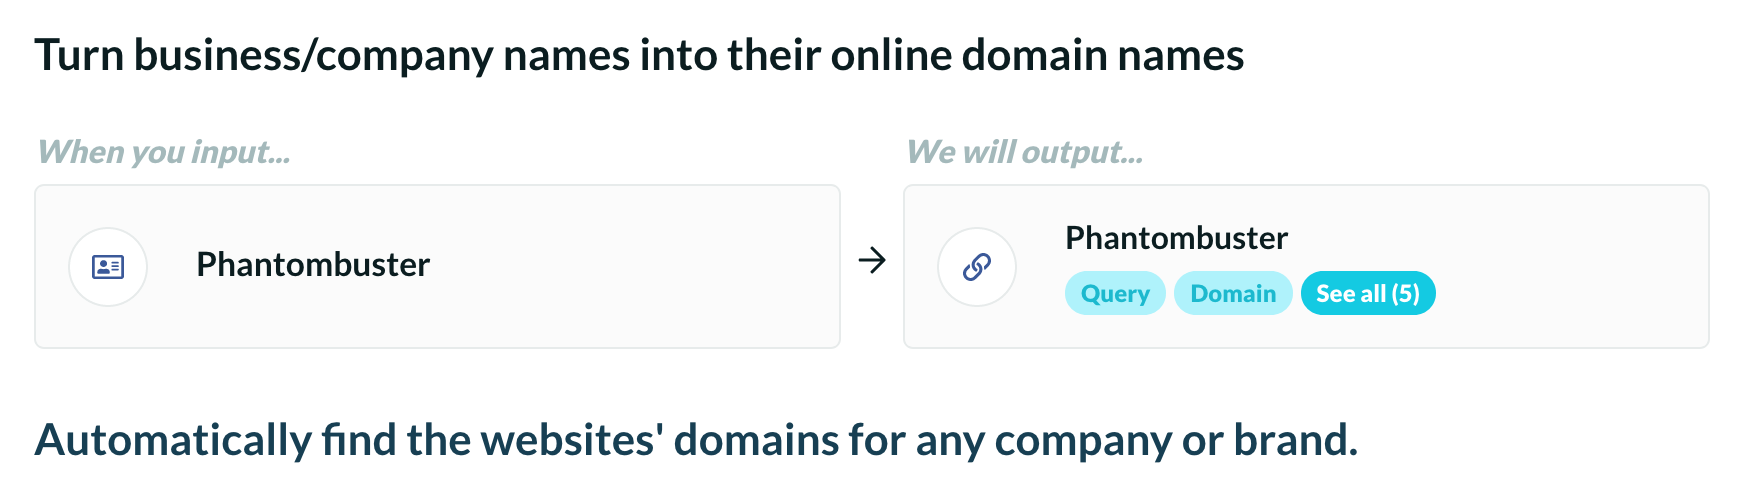 How to find domain names based on company names